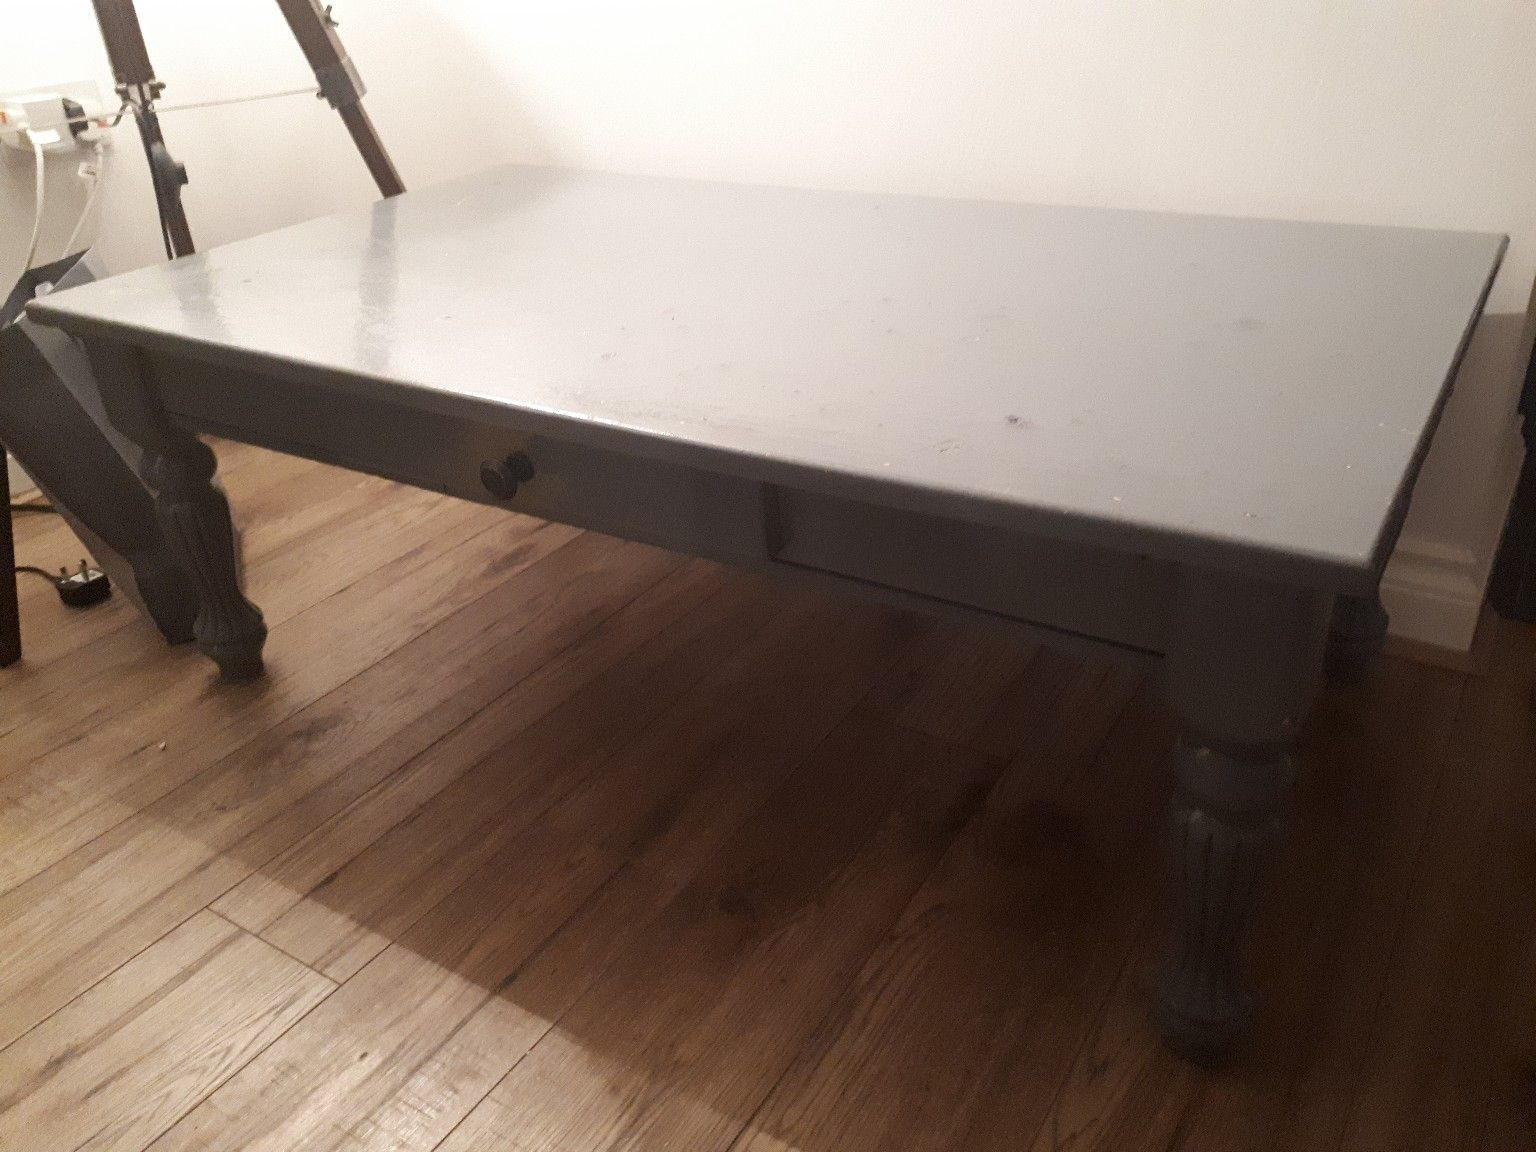 Hardwood Floor Refinishing Plymouth Ma Of Https En Shpock Com I W2n66zbkysaebdbz 2018 08 19t171059 Throughout Coffee Table 5b89aad